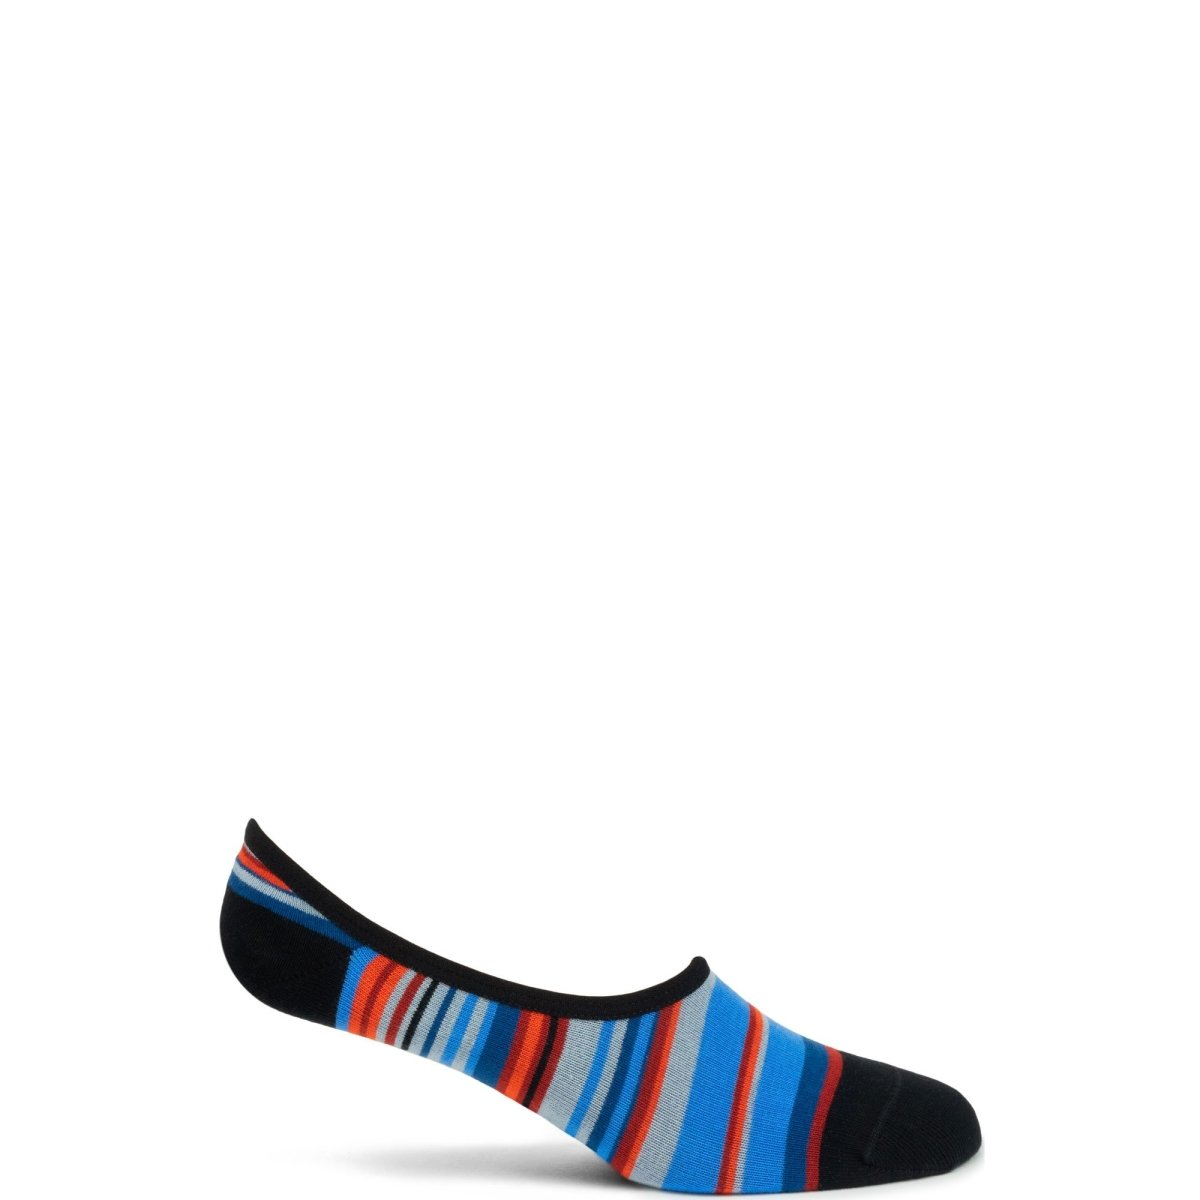 Transitional Stripes 2 No Show Sock - Ozone Design Inc